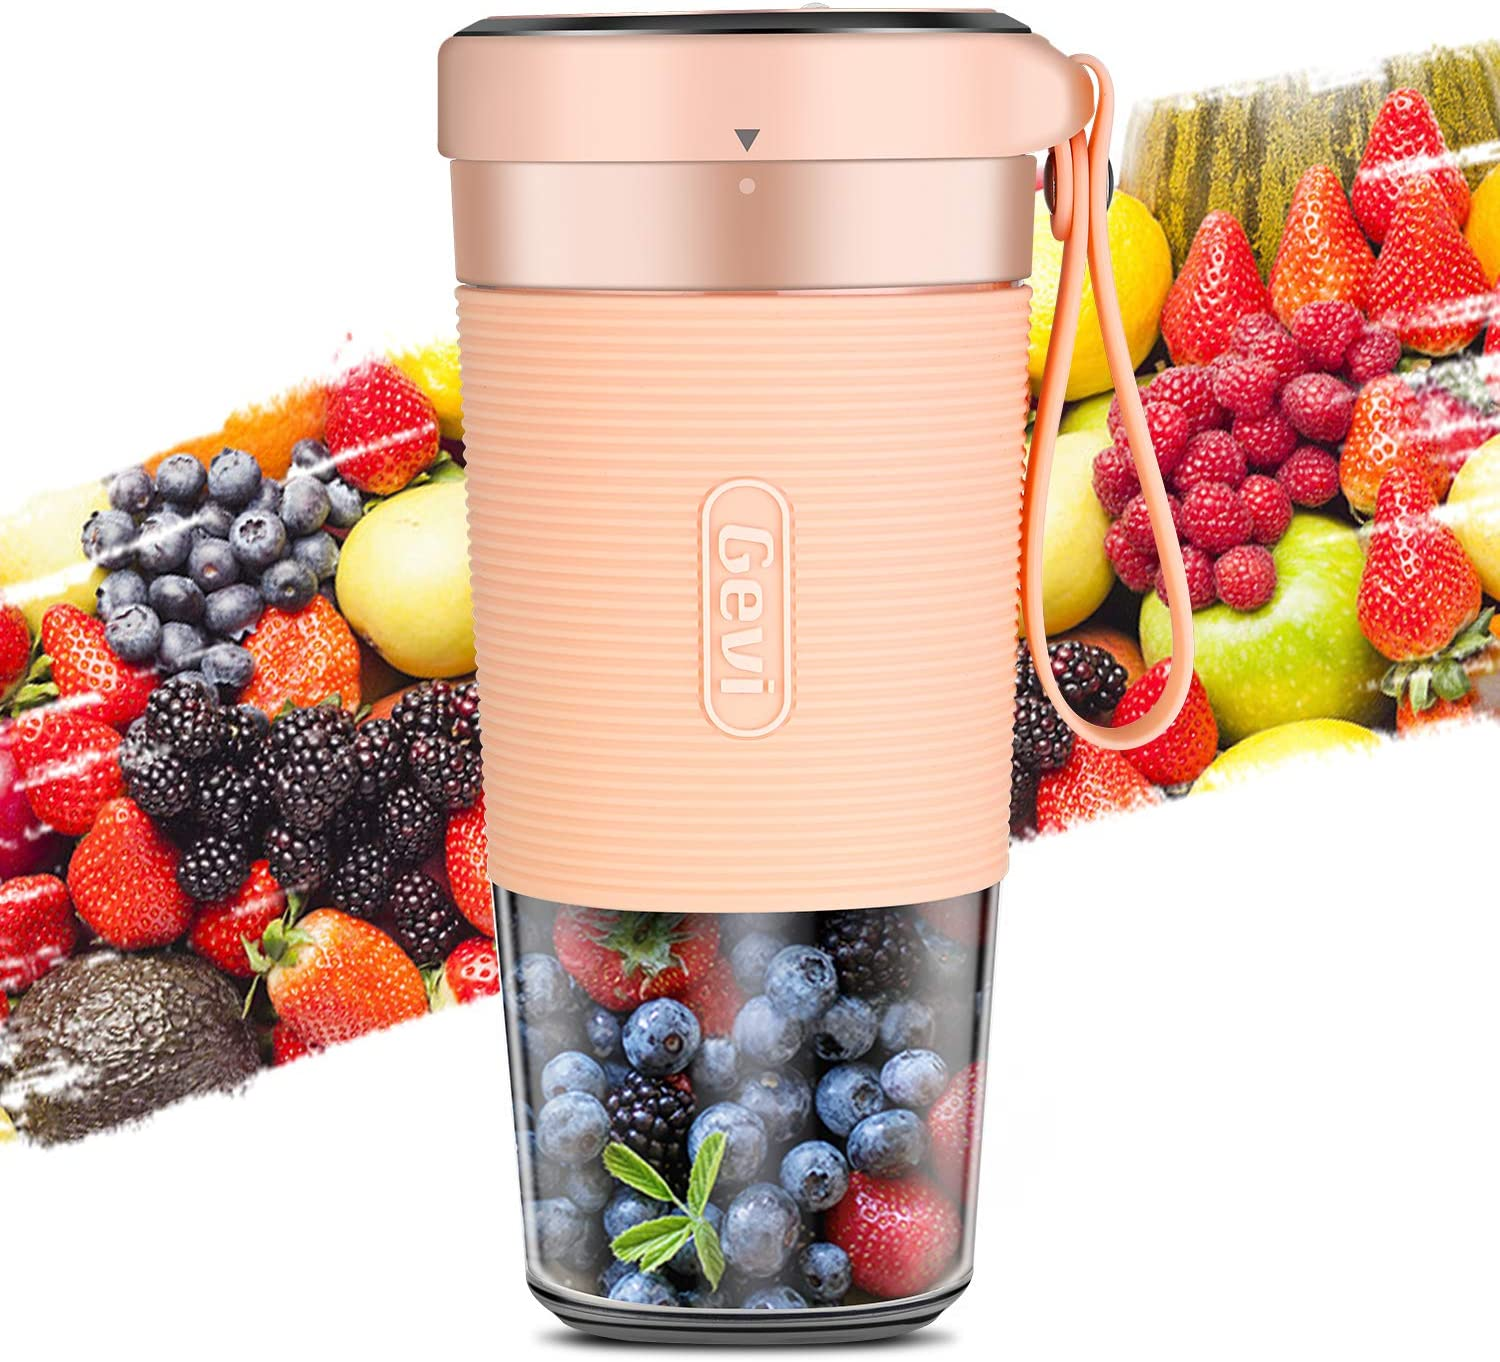 Portable Blender For Juice, Shakes and Smoothies, Cordless Personal Size Blenders With USB Rechargeable, BPA Free Juicer Mixer Cup For Home, Office, Sports, Travel, Outdoors, Low DB, 300ml, 50W, PINK